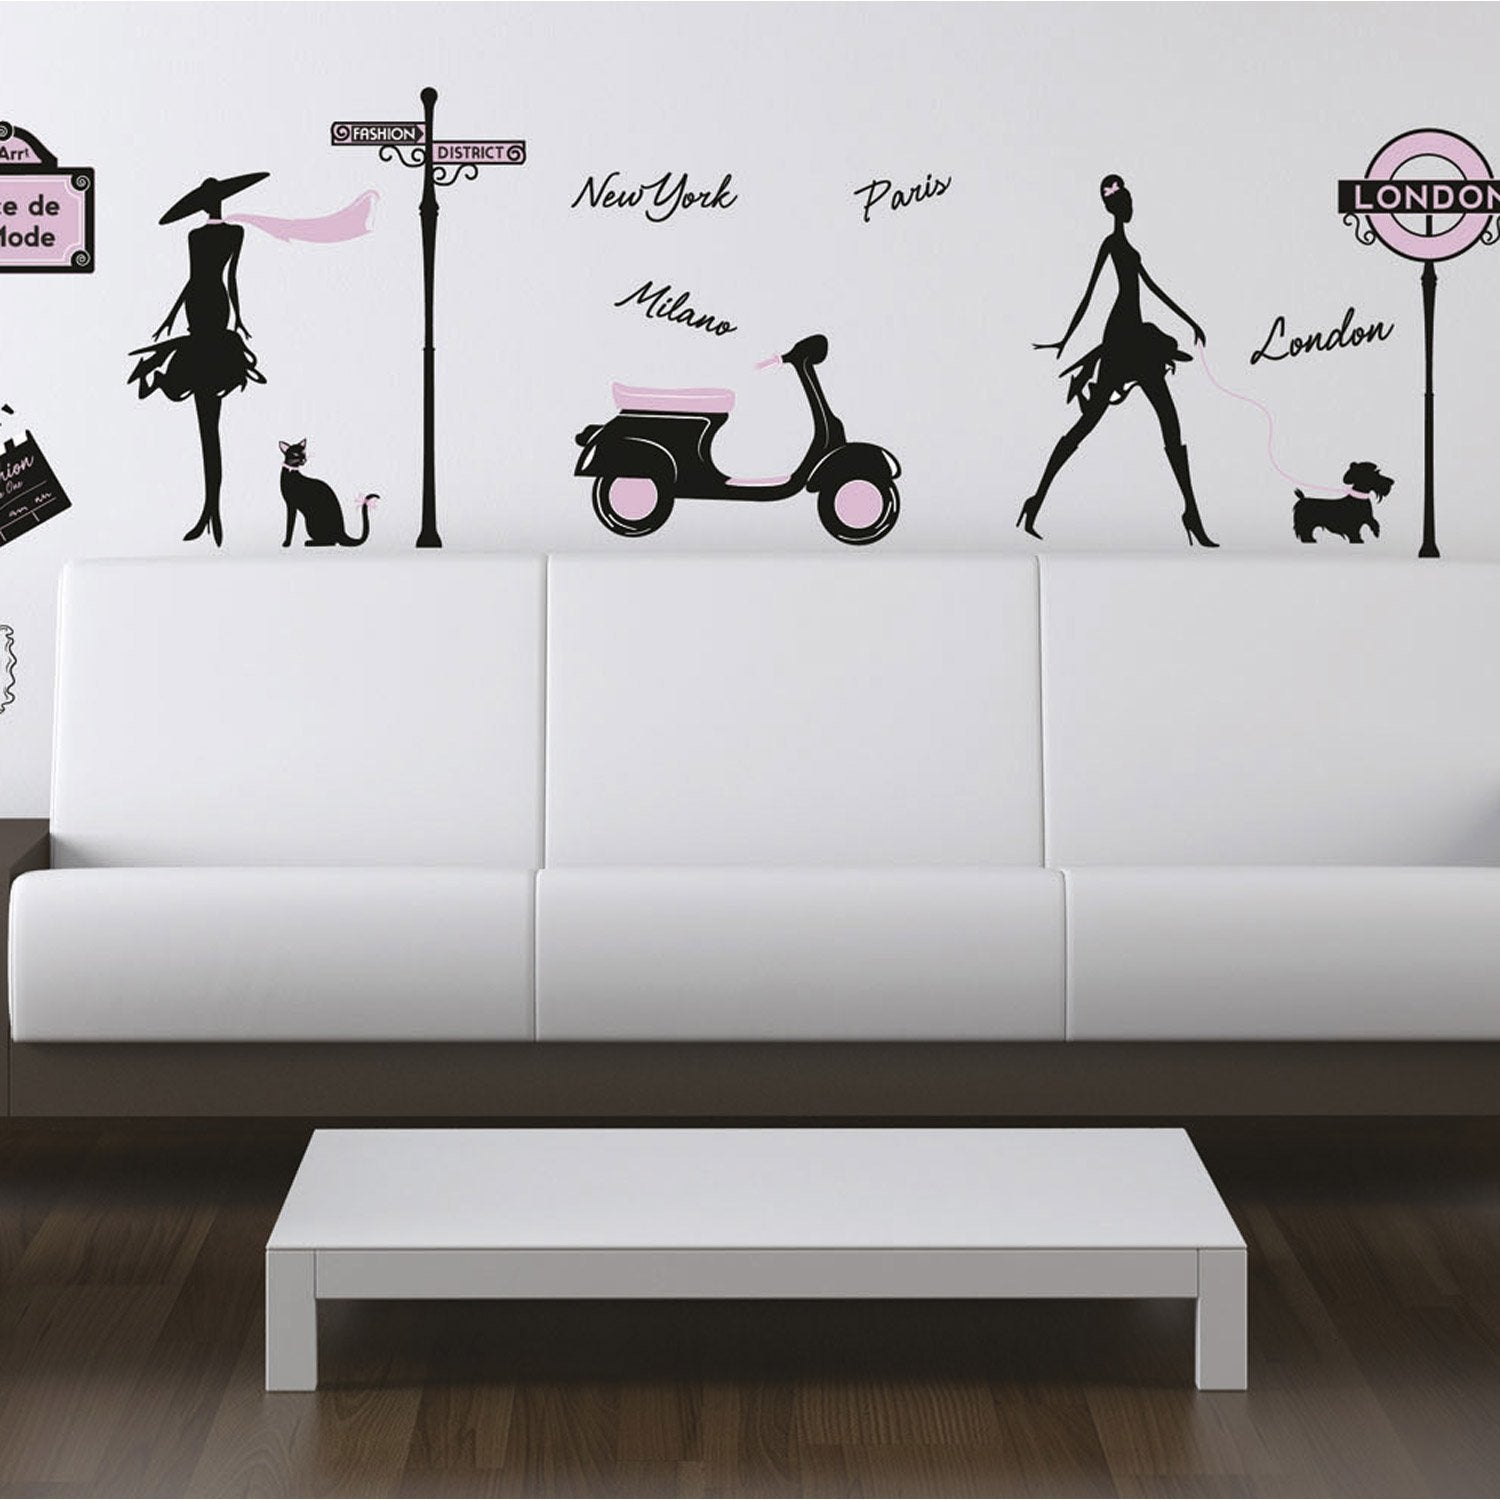 Sticker world fashion 50 cm x 70 cm leroy merlin - Sticker cuisine leroy merlin ...